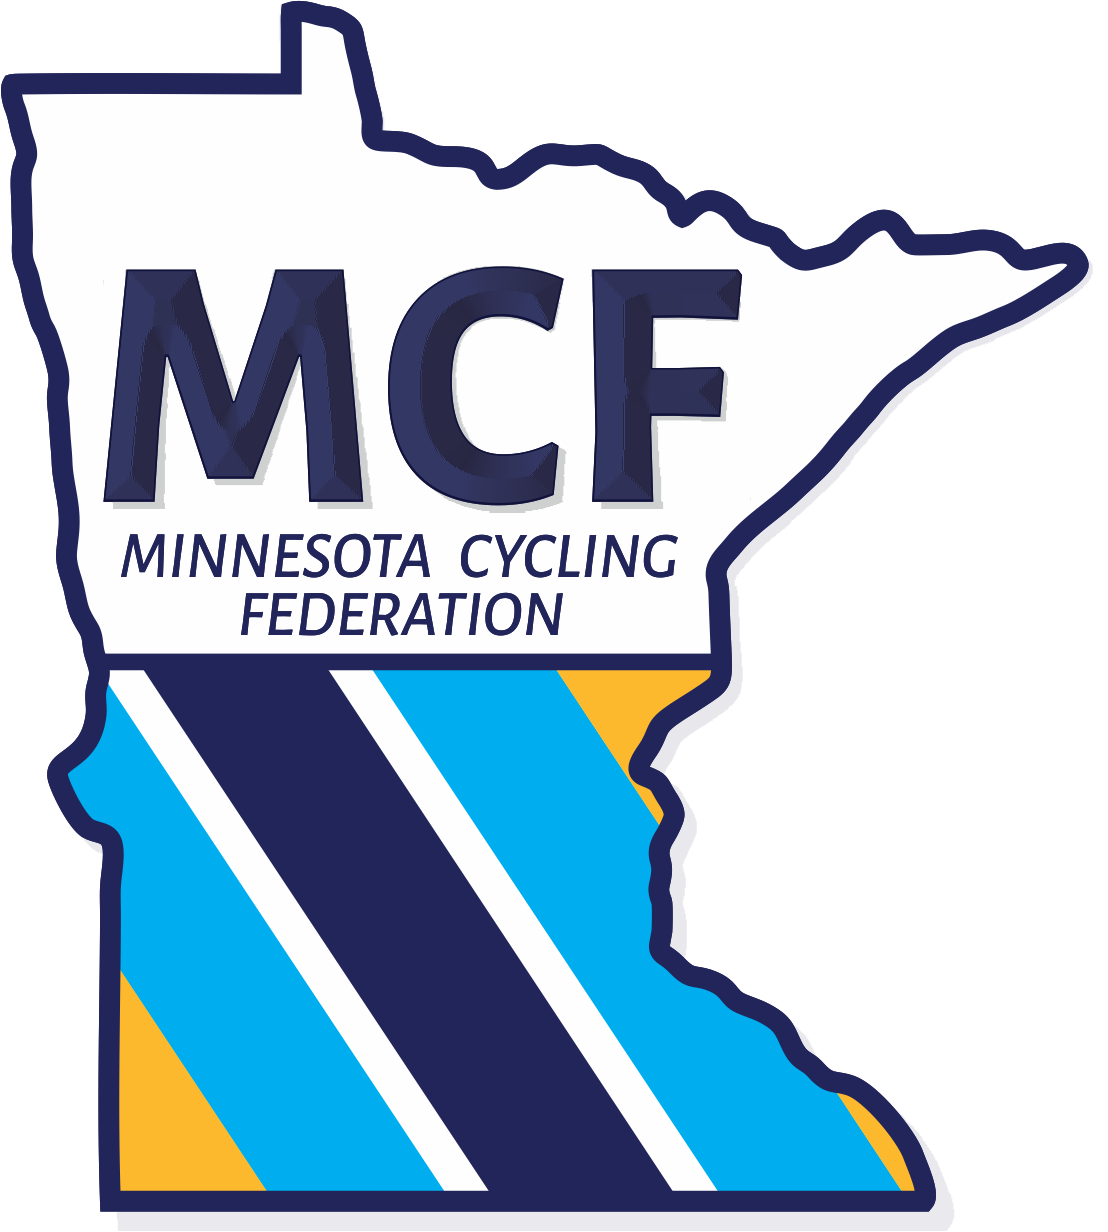 Minnesota Cycling Federation